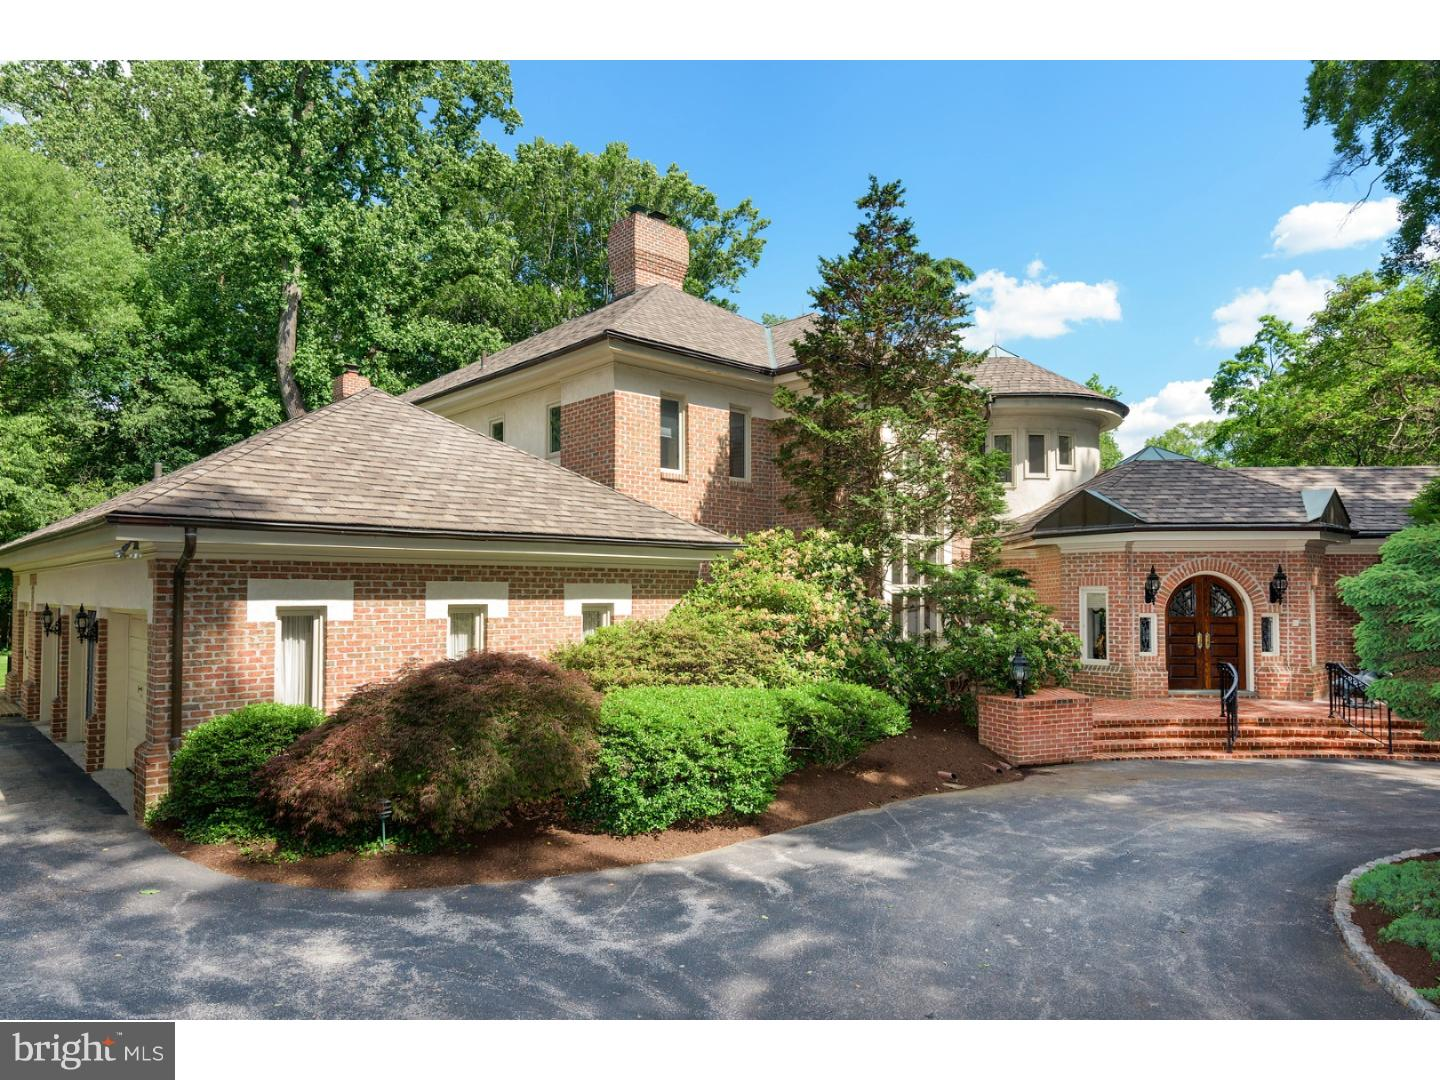 145 CHESWOLD LANE, HAVERFORD, PA 19041